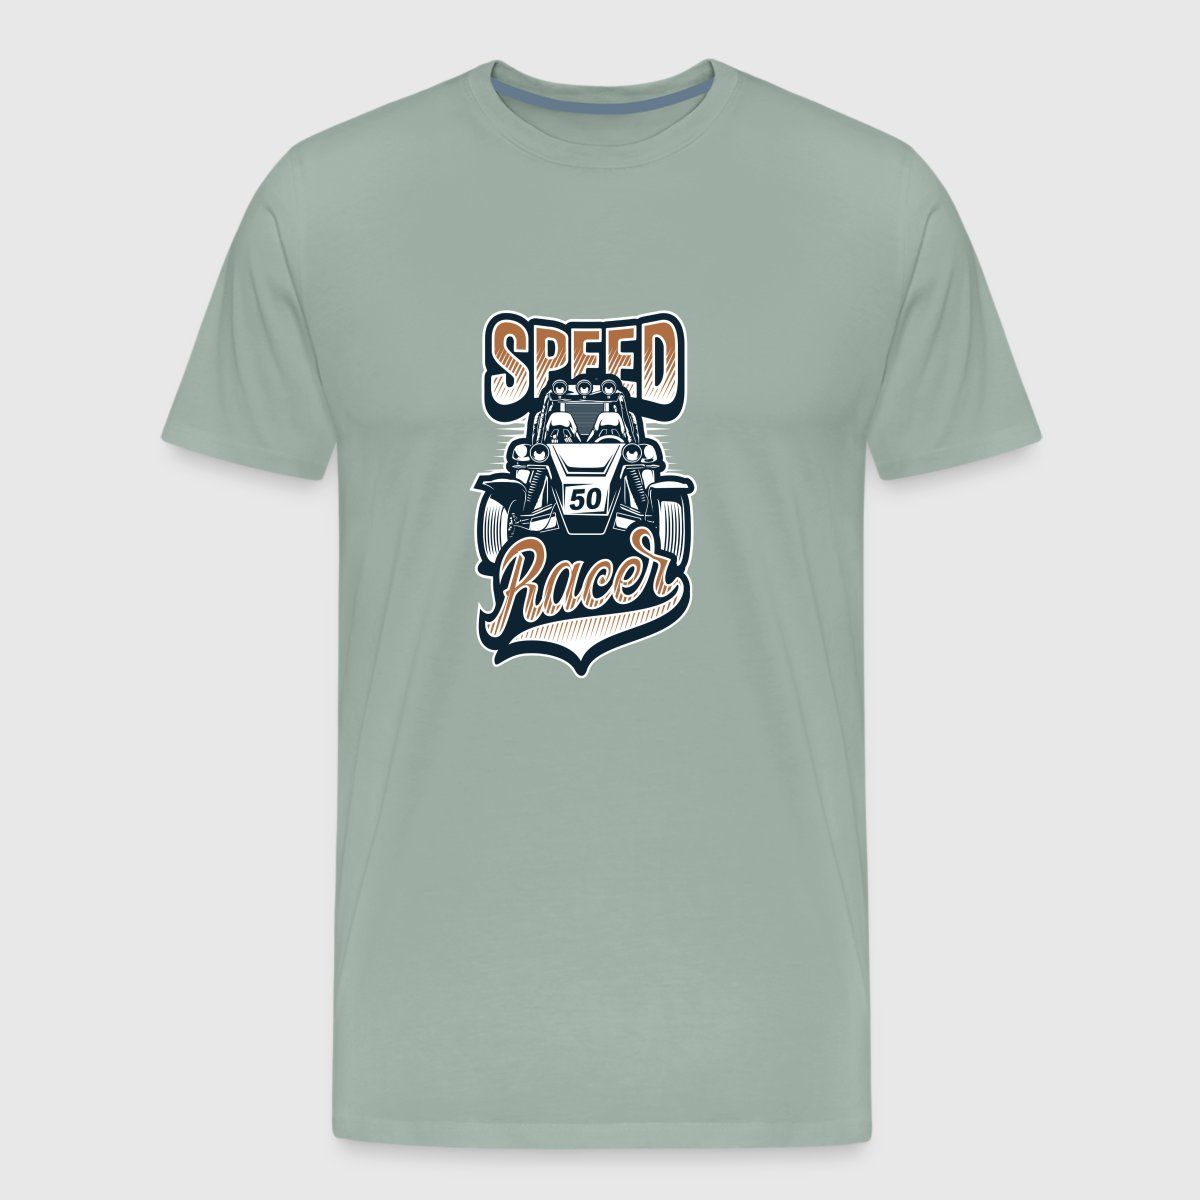 Roblox How To Sell Shirt How To Sell T Shirts On Roblox Without Bc Buyudum Cocuk Oldum